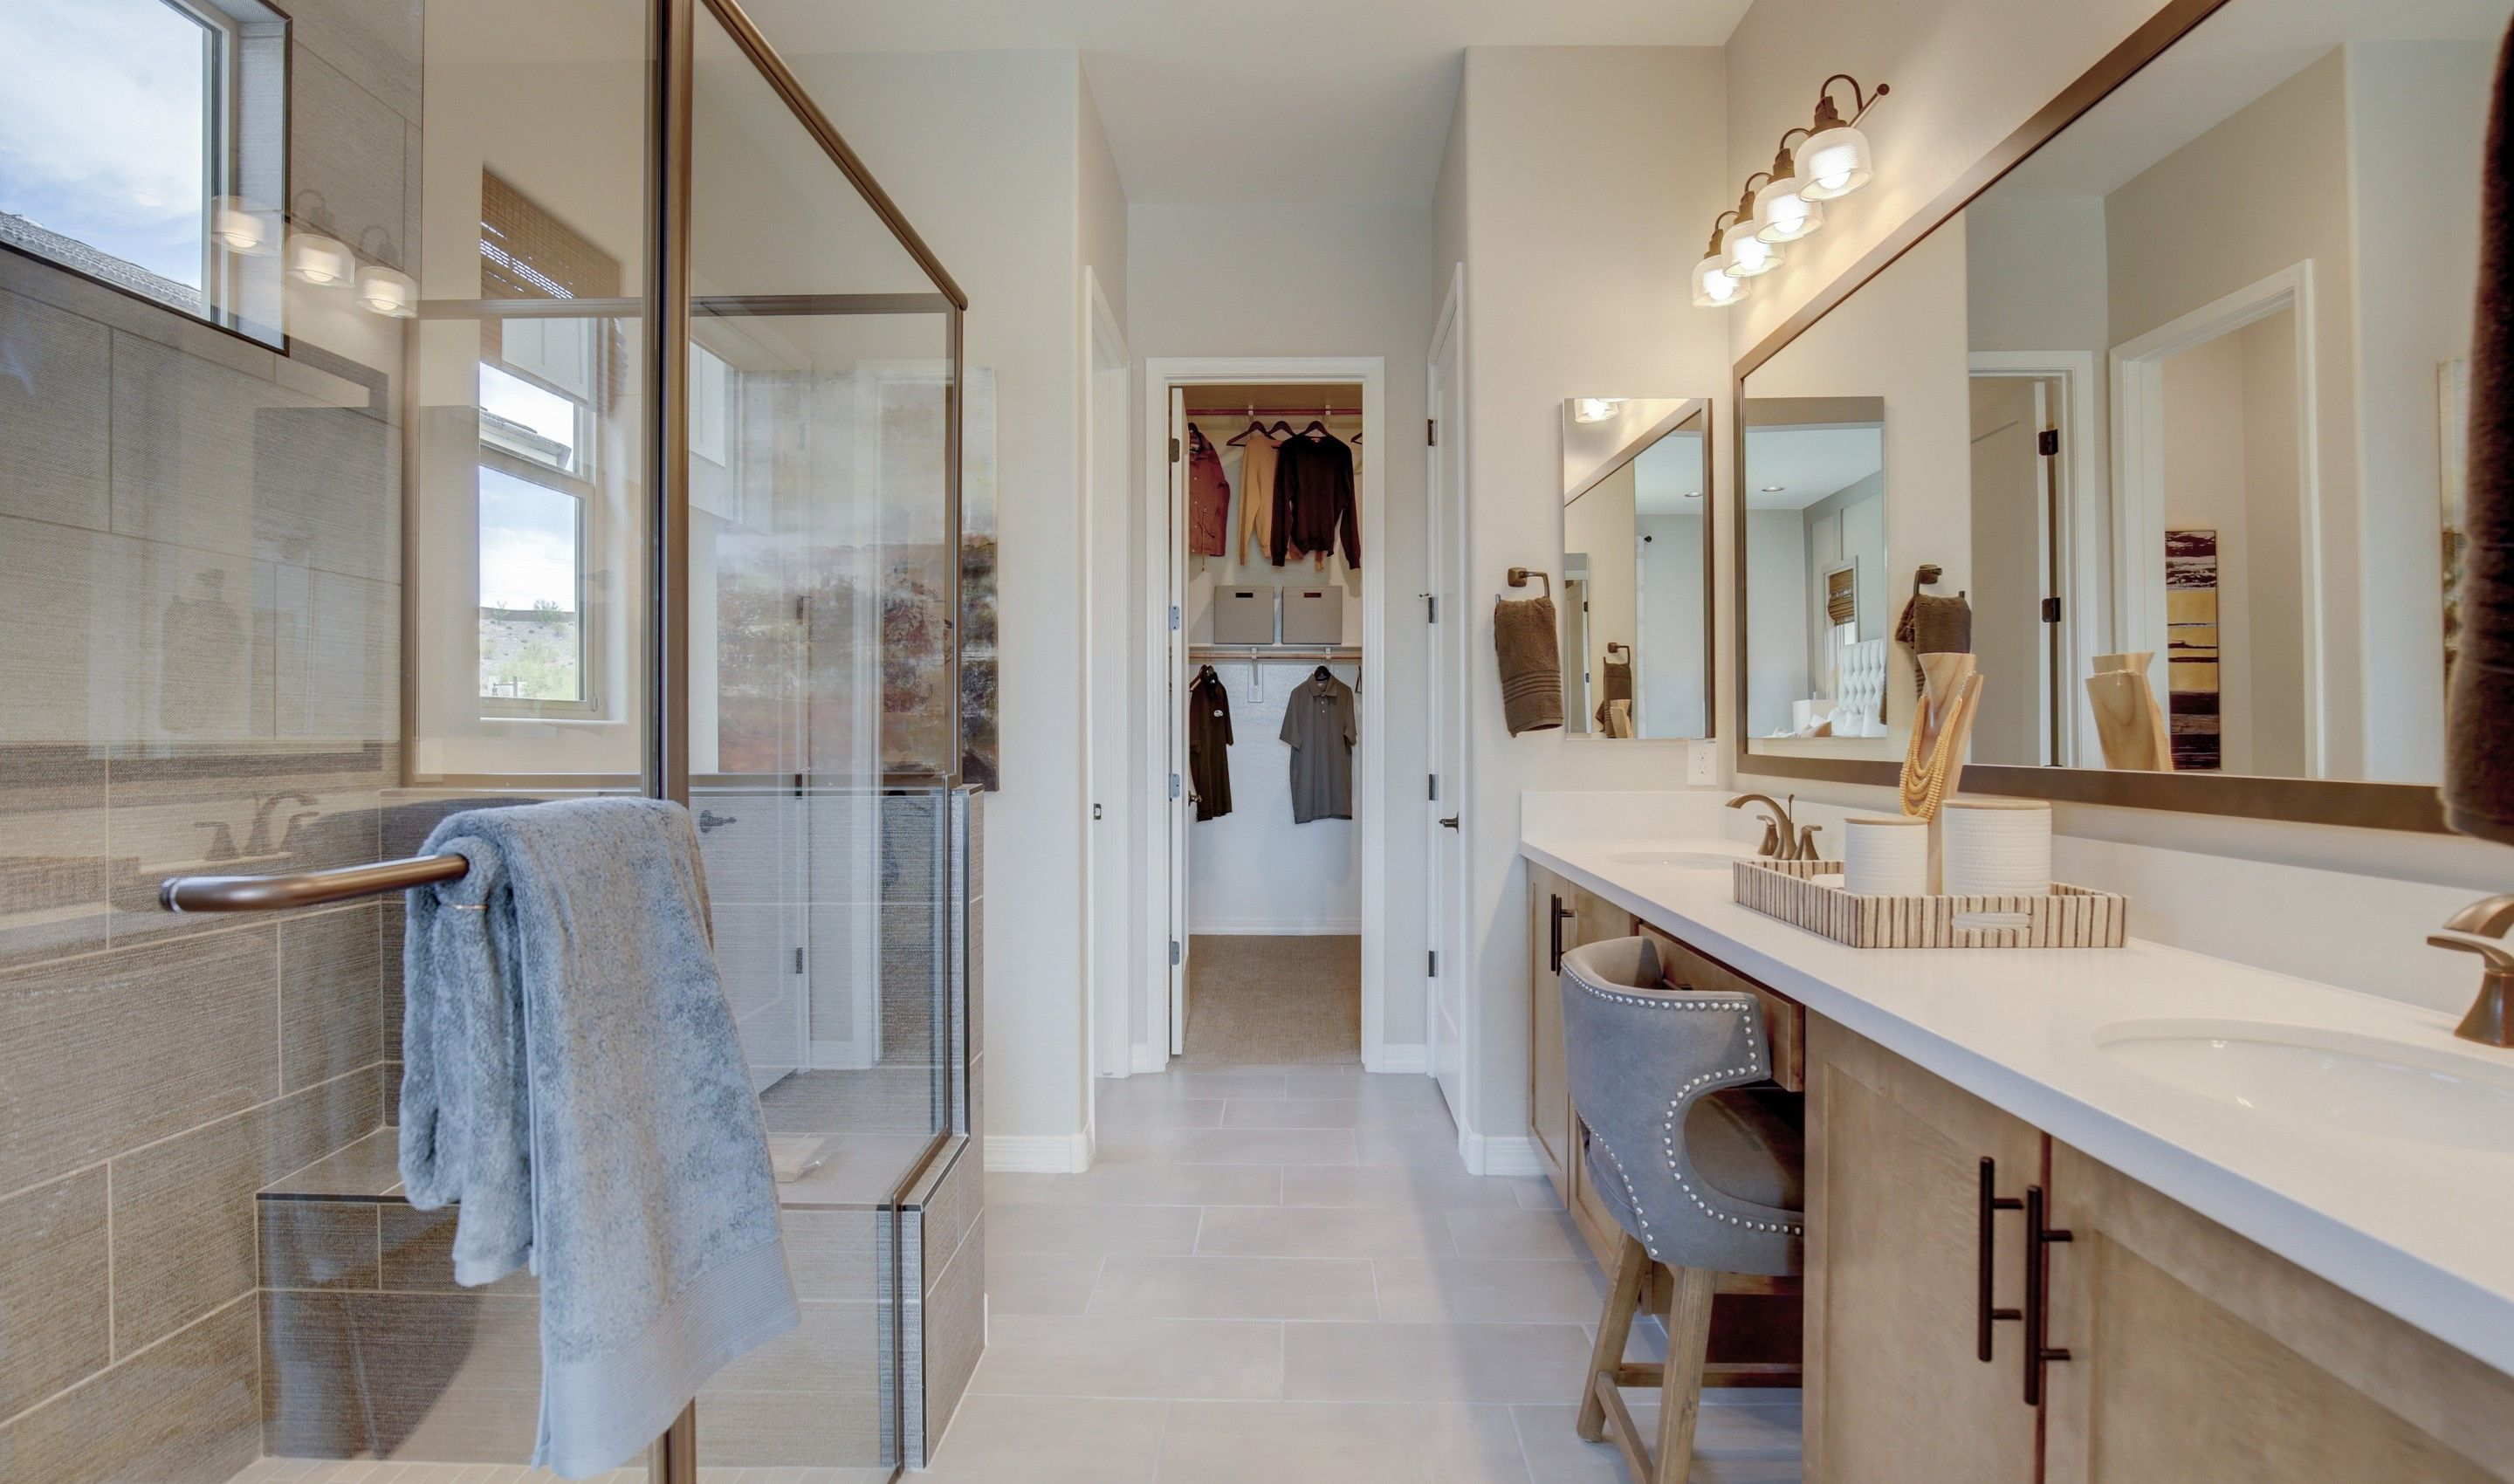 Bathroom featured in the Cavallo By K. Hovnanian's® Four Seasons in Phoenix-Mesa, AZ